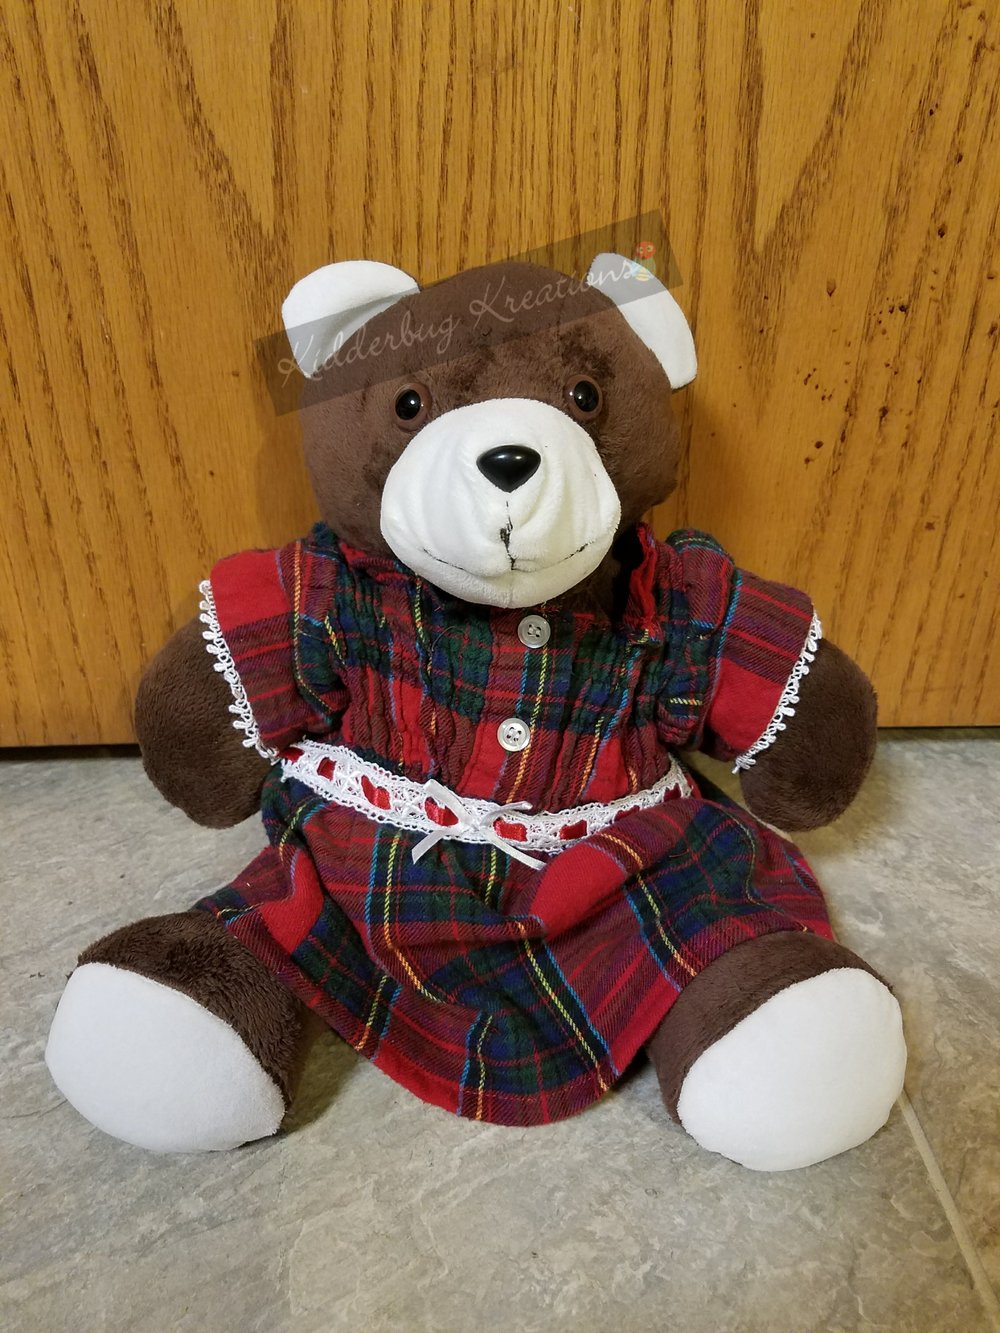 Memorial Bear from the clothing of a loved one